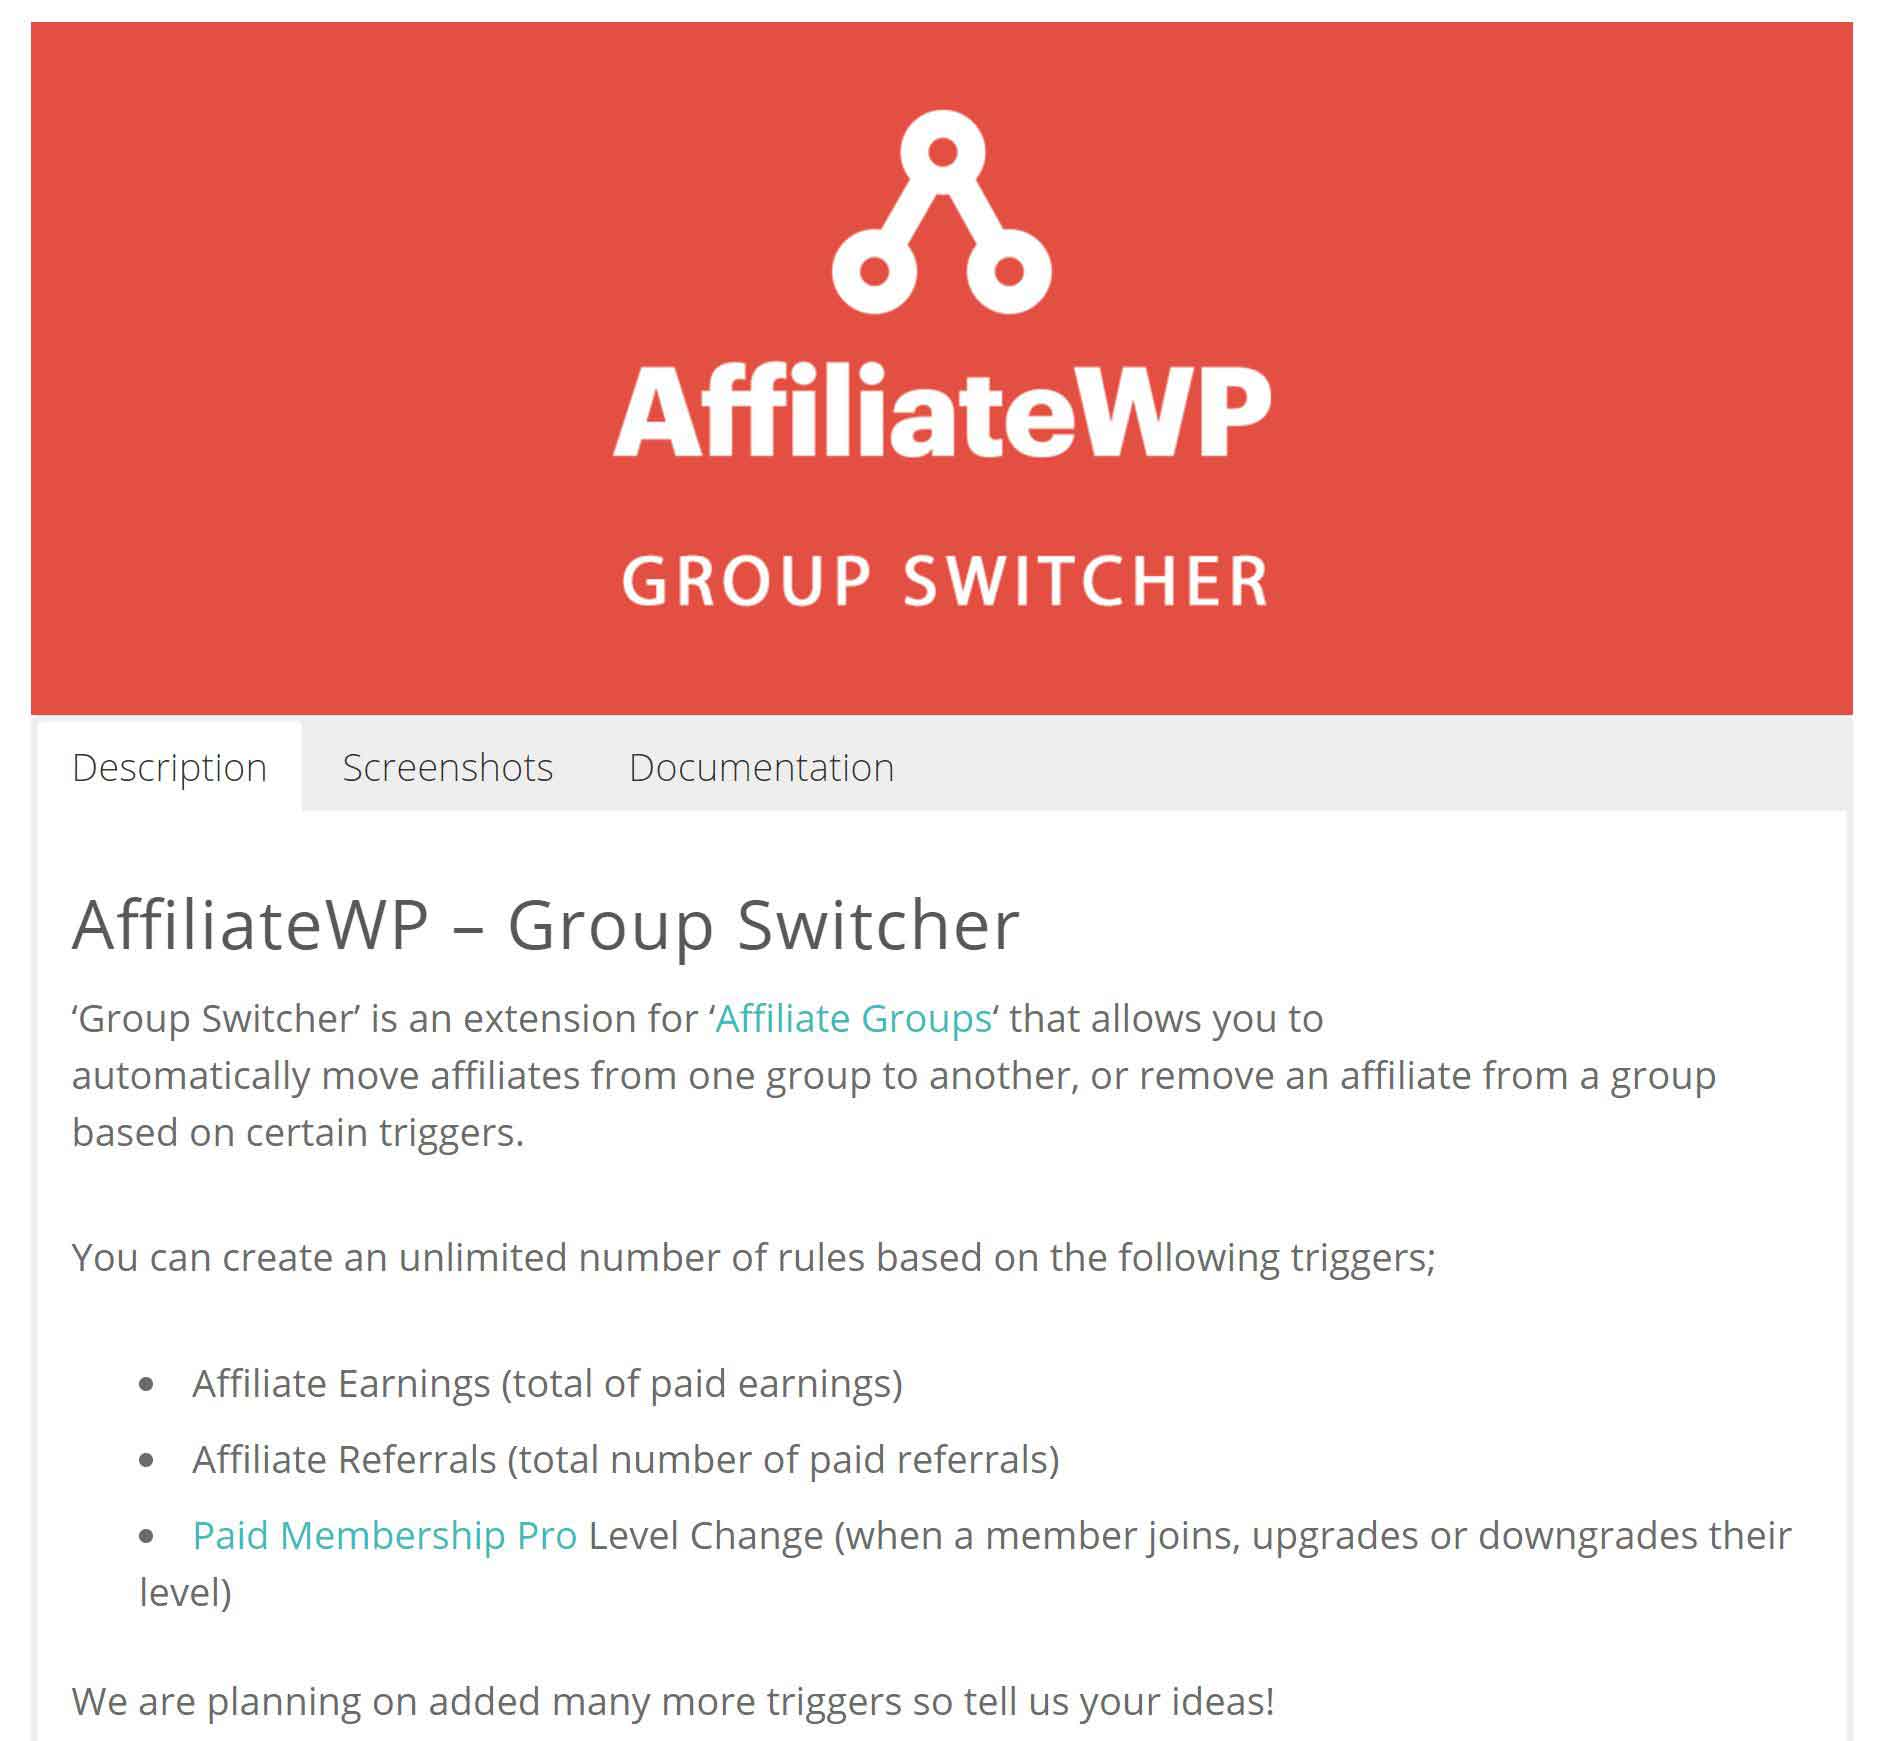 AffiliateWP – Group Switcher